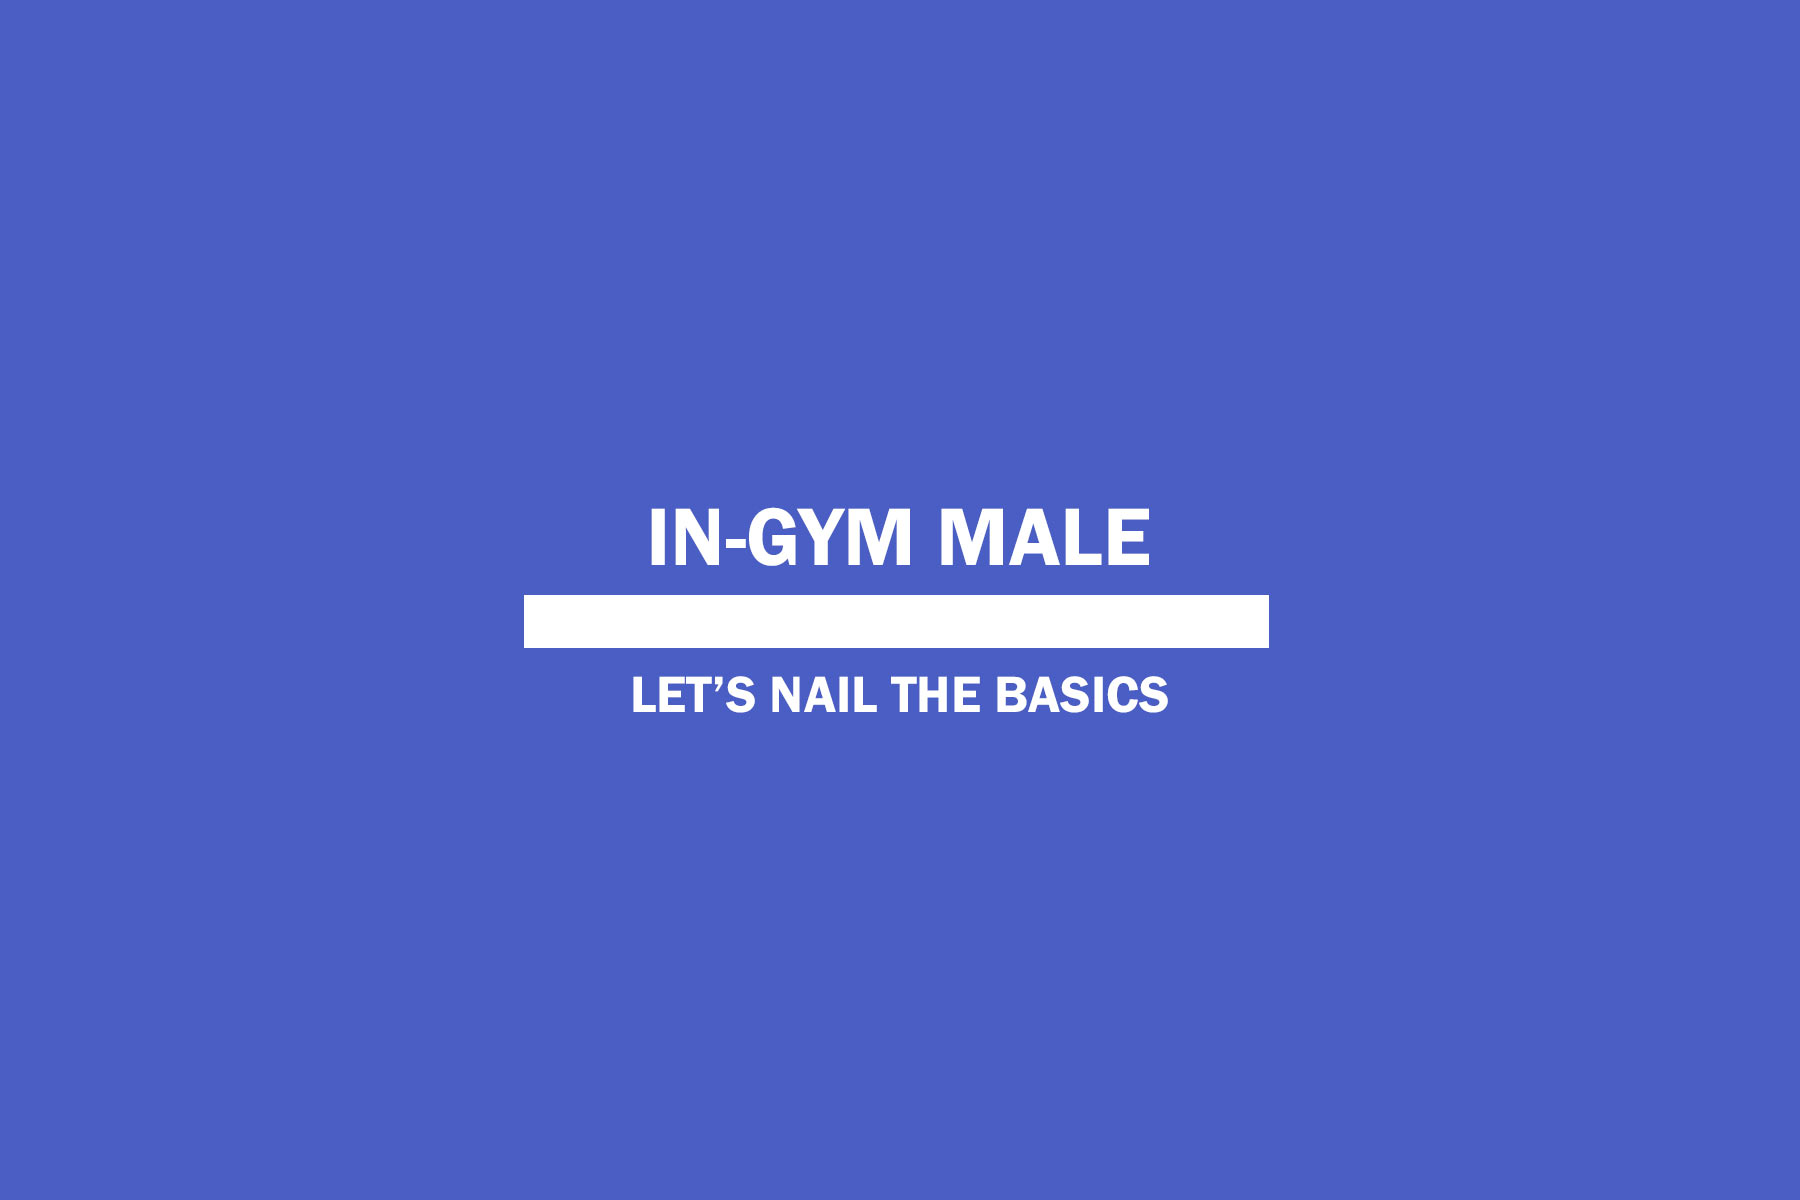 In-gym Male 7th of October to 28th of October